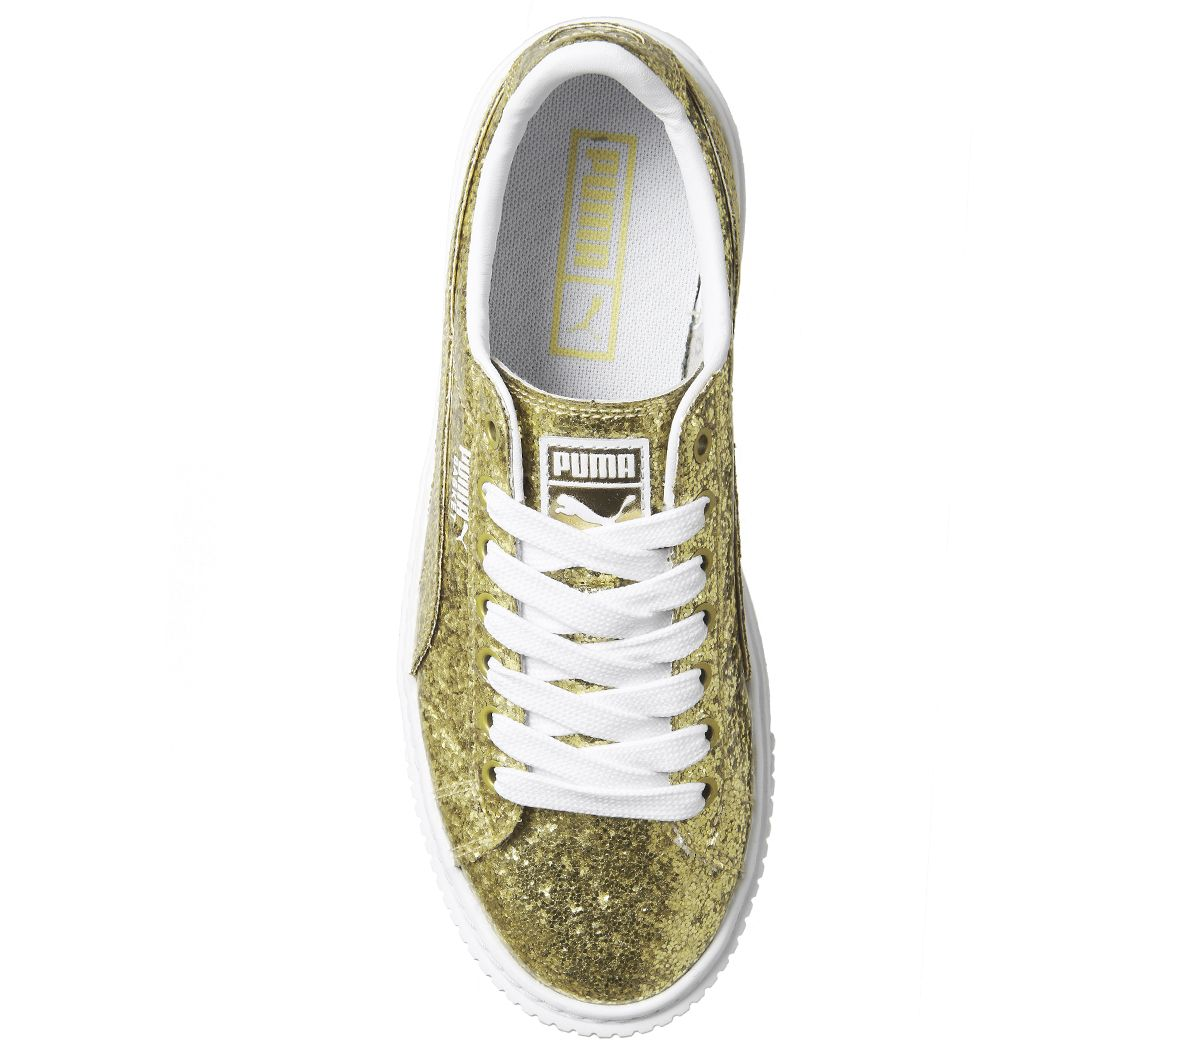 9cee2c1af1b724 Sentinel Womens Puma Basket Platform Trainers Gold Glitter White Trainers  Shoes